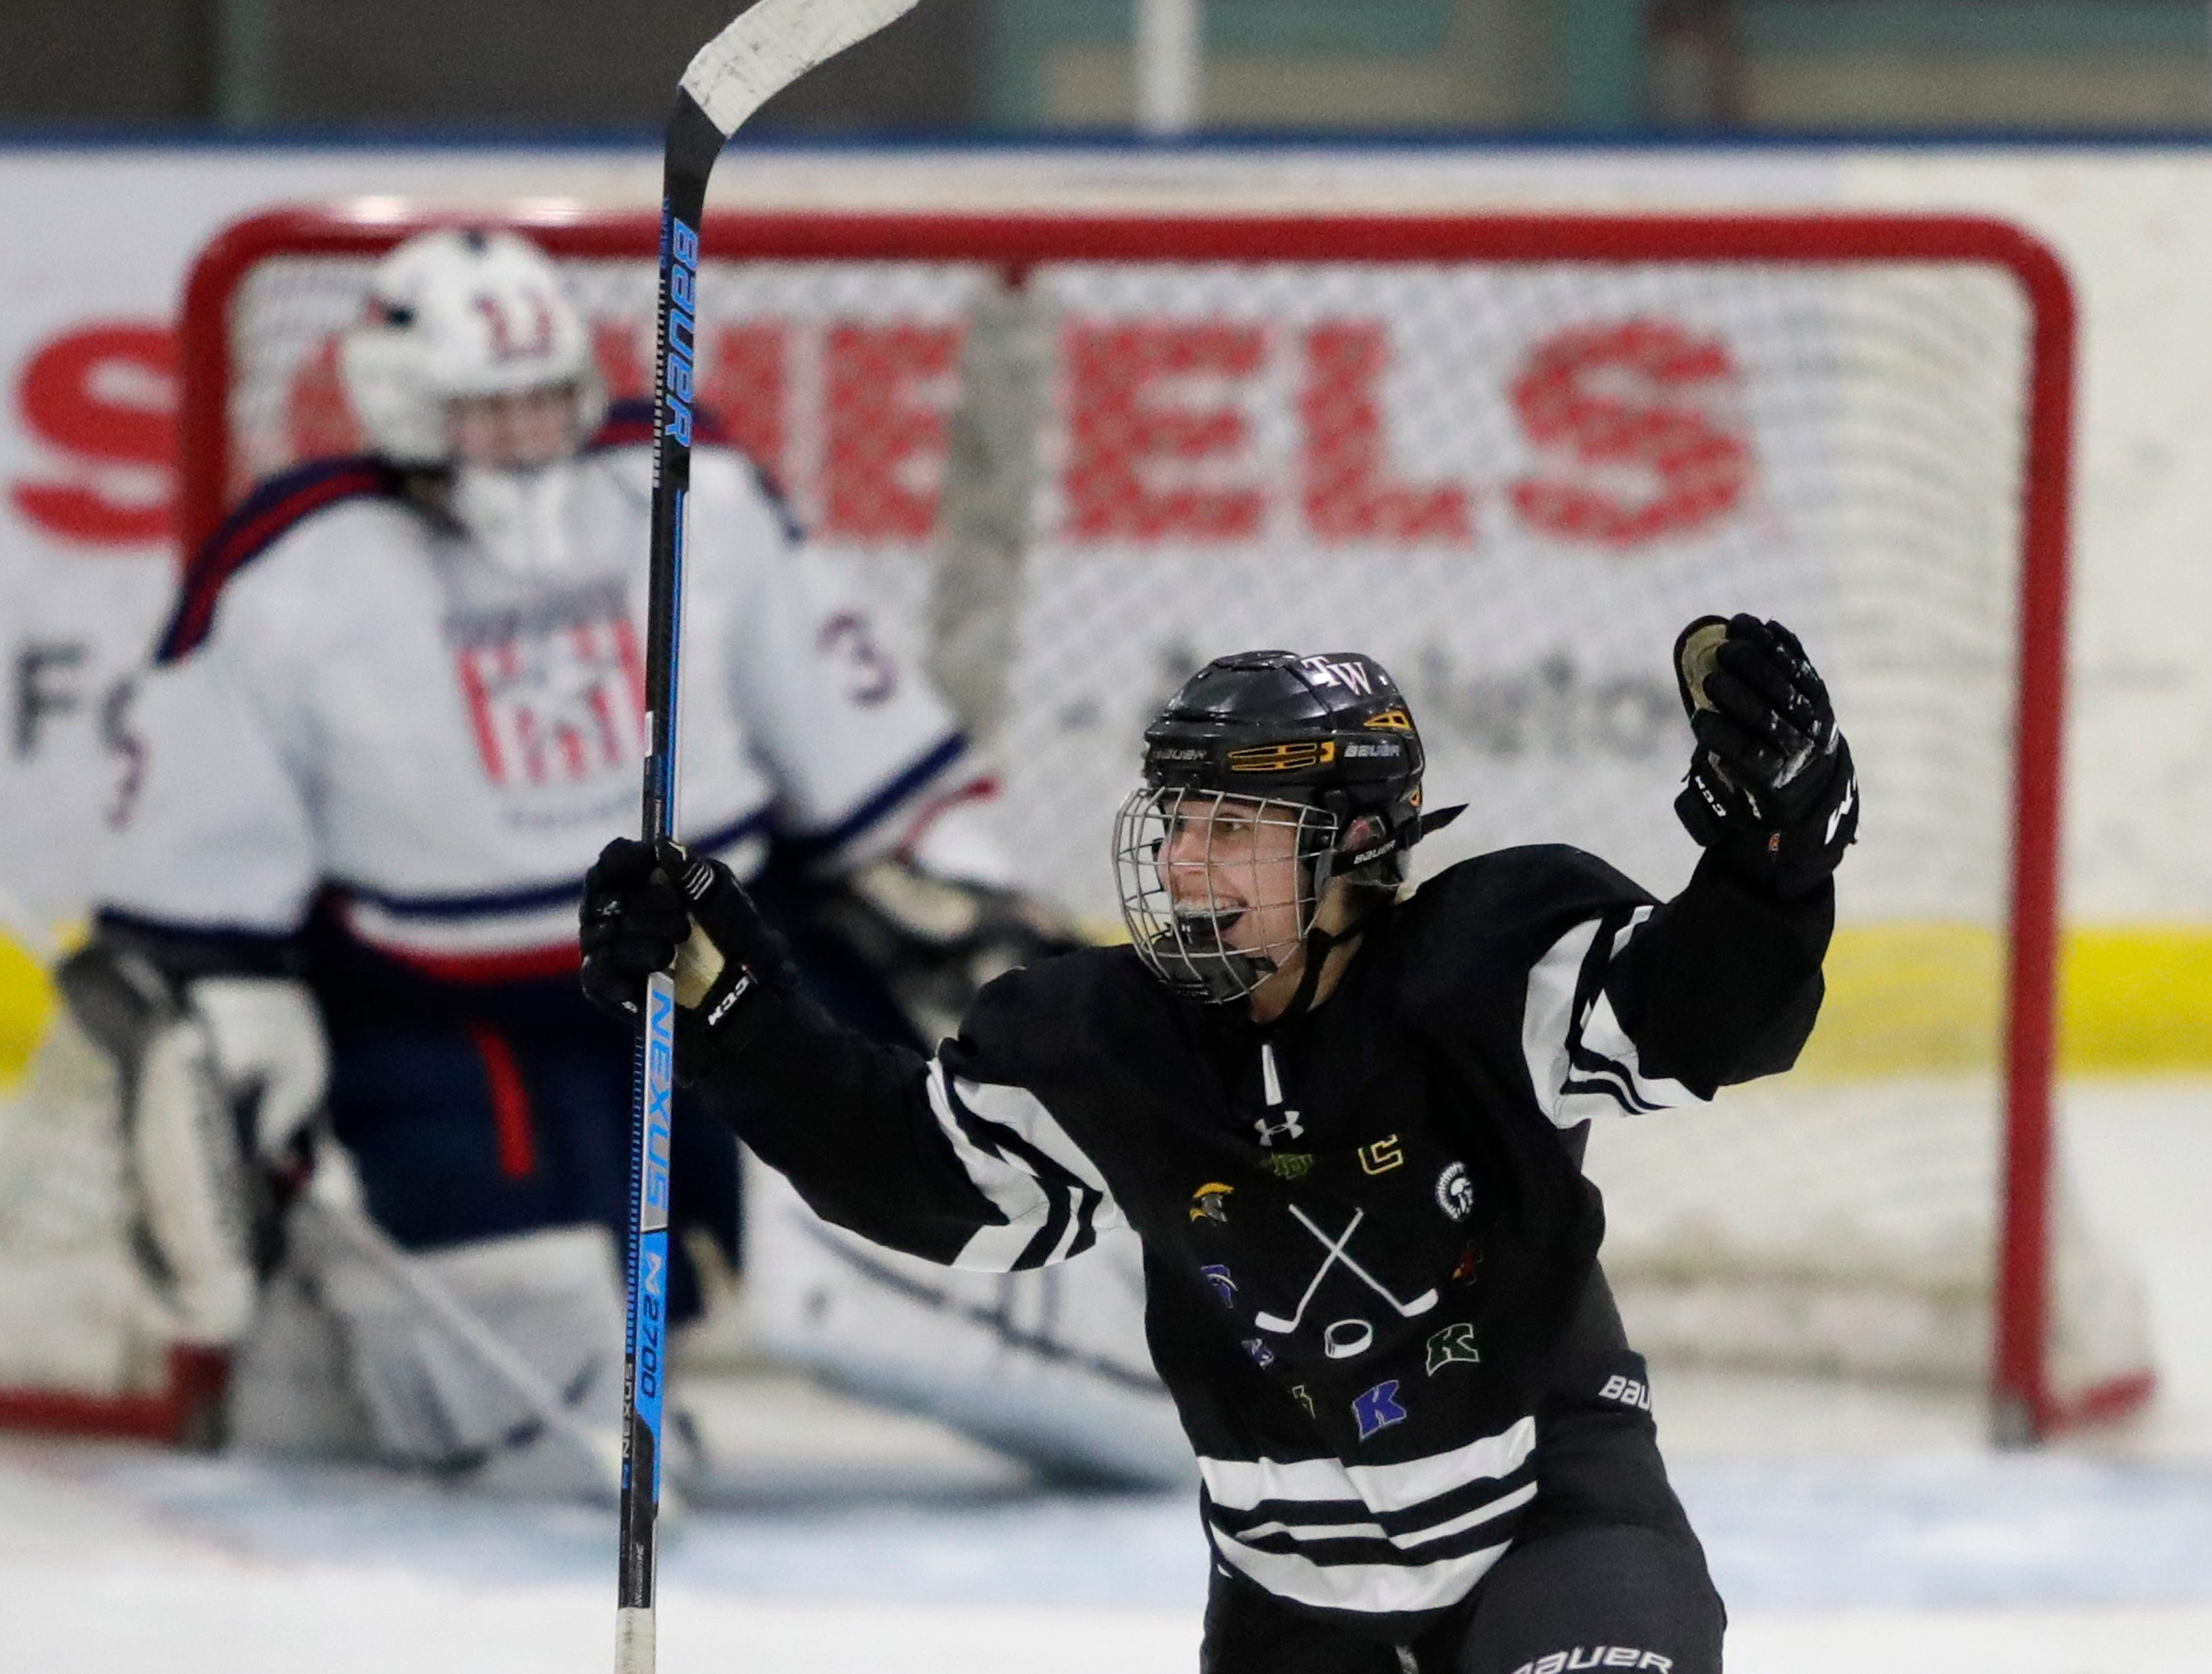 The Warbirds' Alyssa Heim (37) celebrates scoring a goal against Fox Cities Stars' Hattie Berndt (33) during their girls hockey game Thursday, January 10, 2019, at Tri-County Ice Arena in Fox Crossing, Wis. Dan Powers/USA TODAY NETWORK-Wisconsin